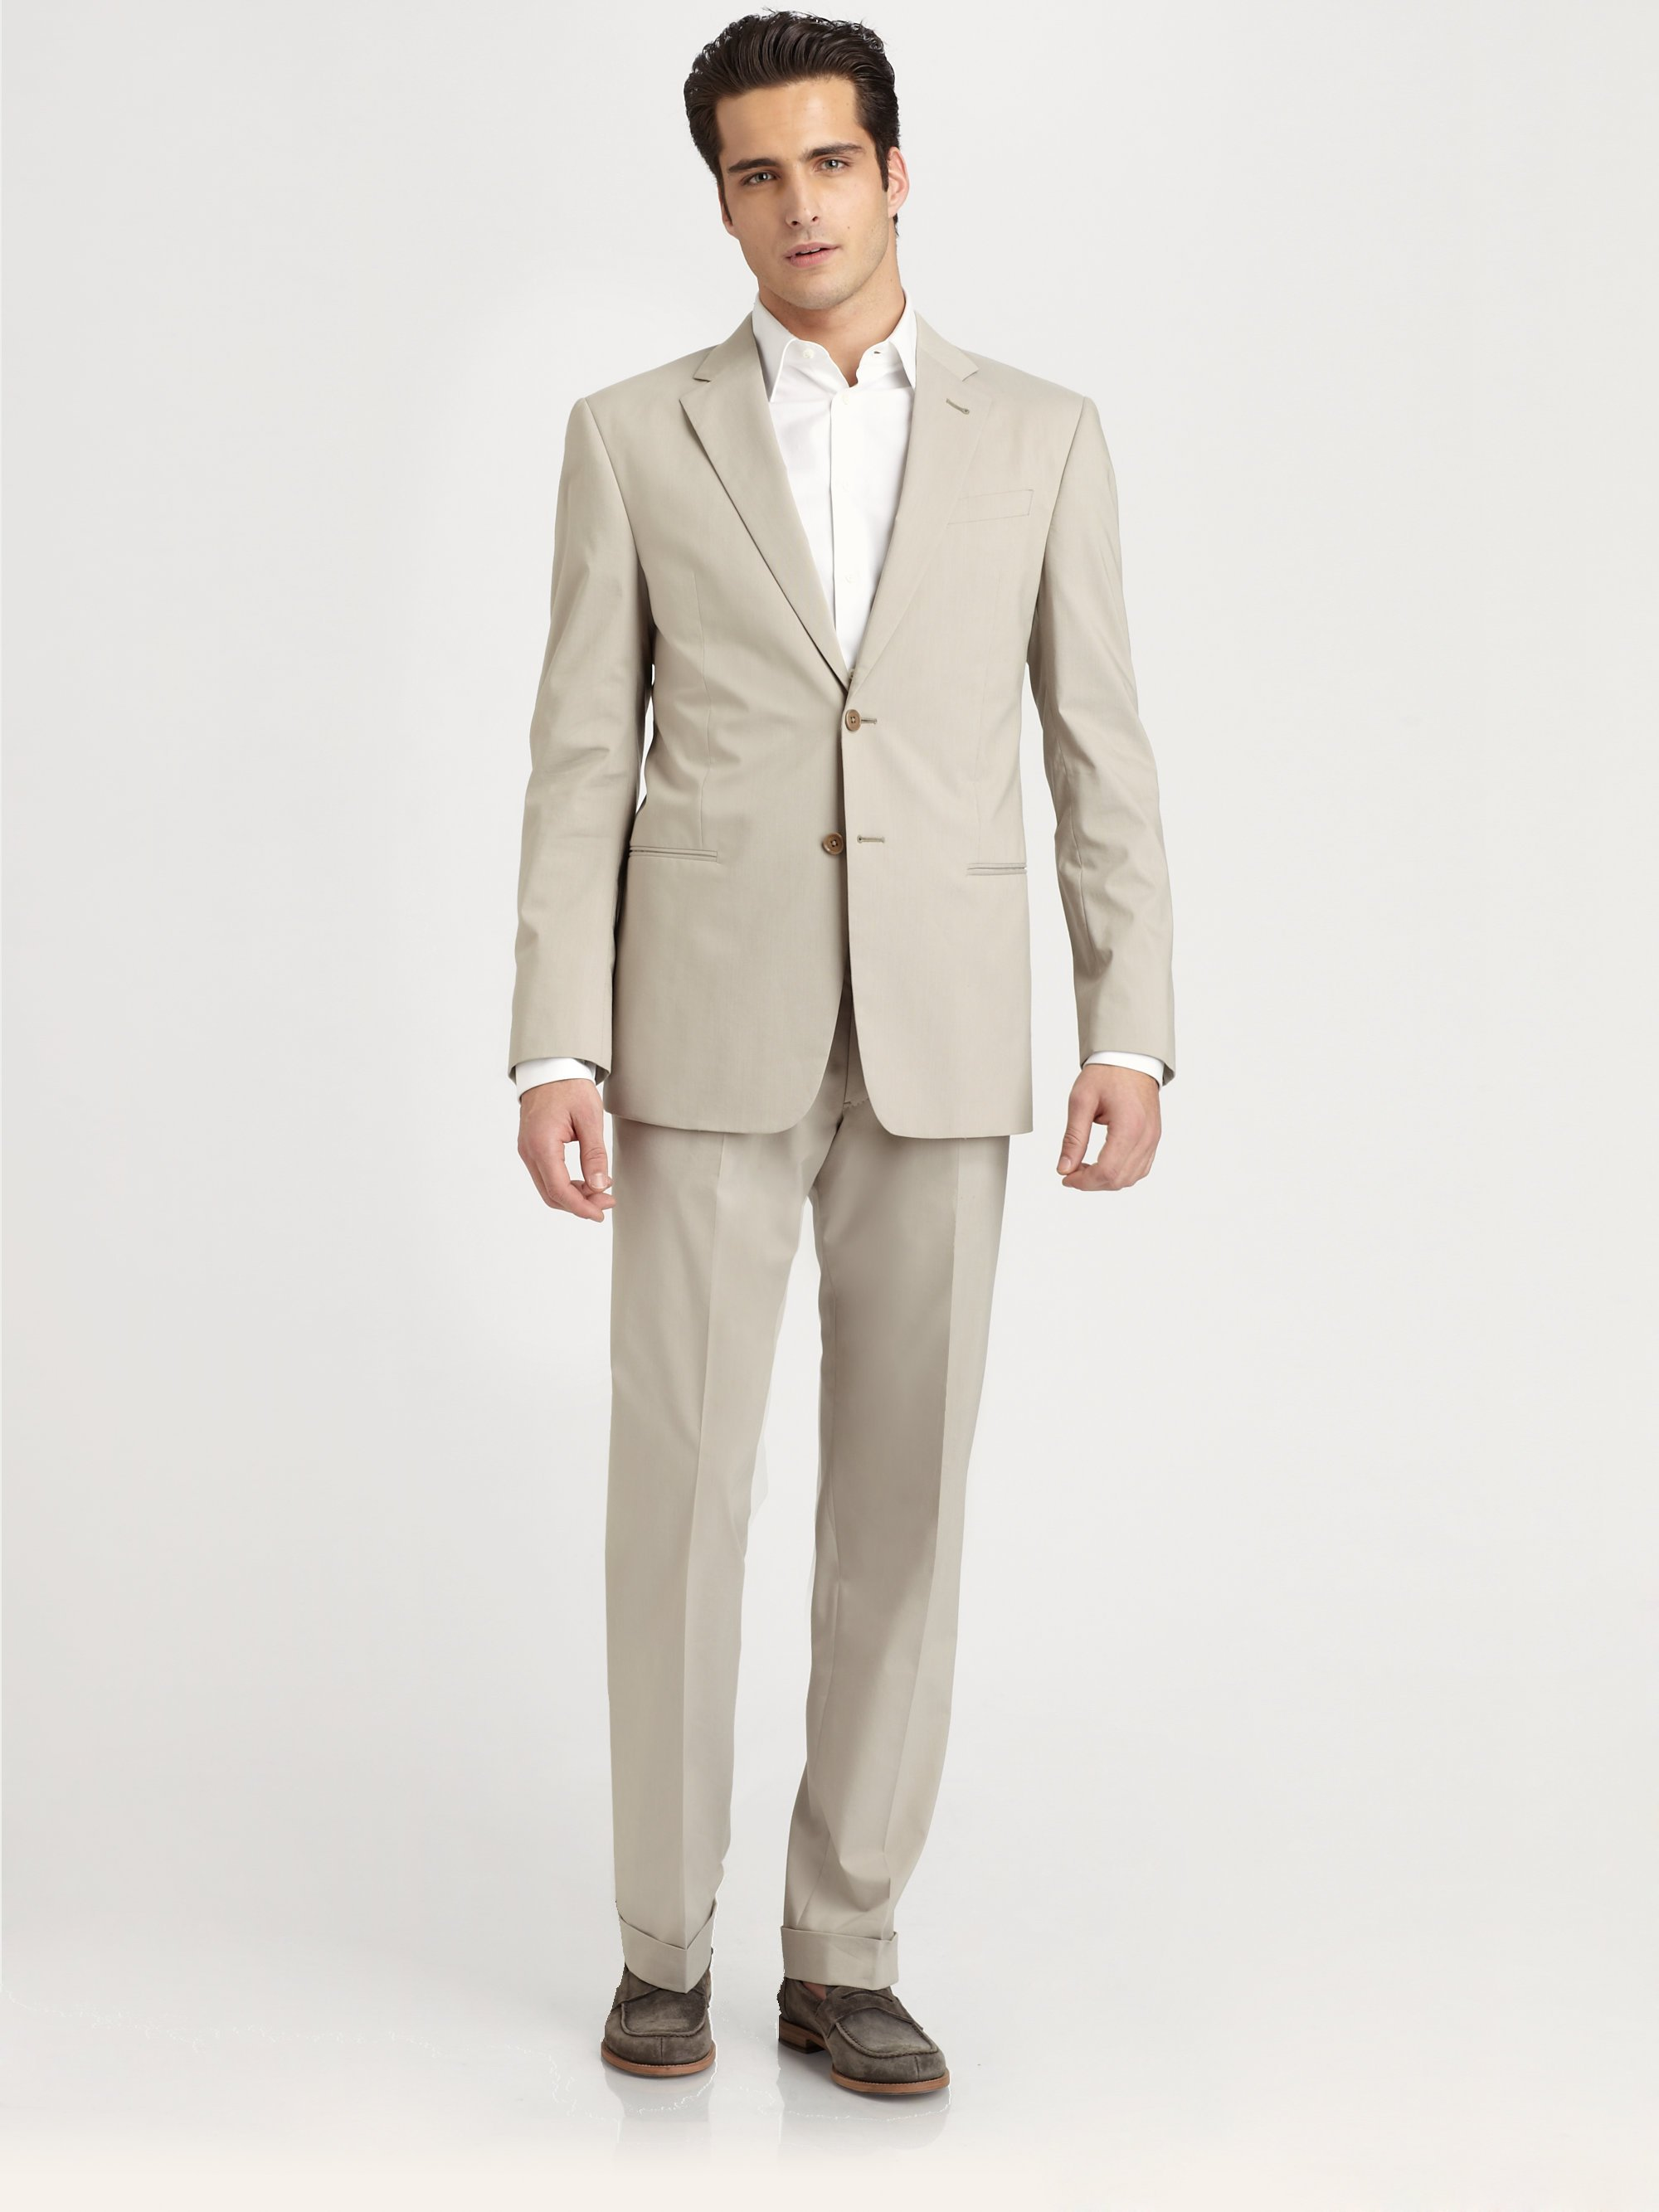 armani suit for men | Fashion Freestyler